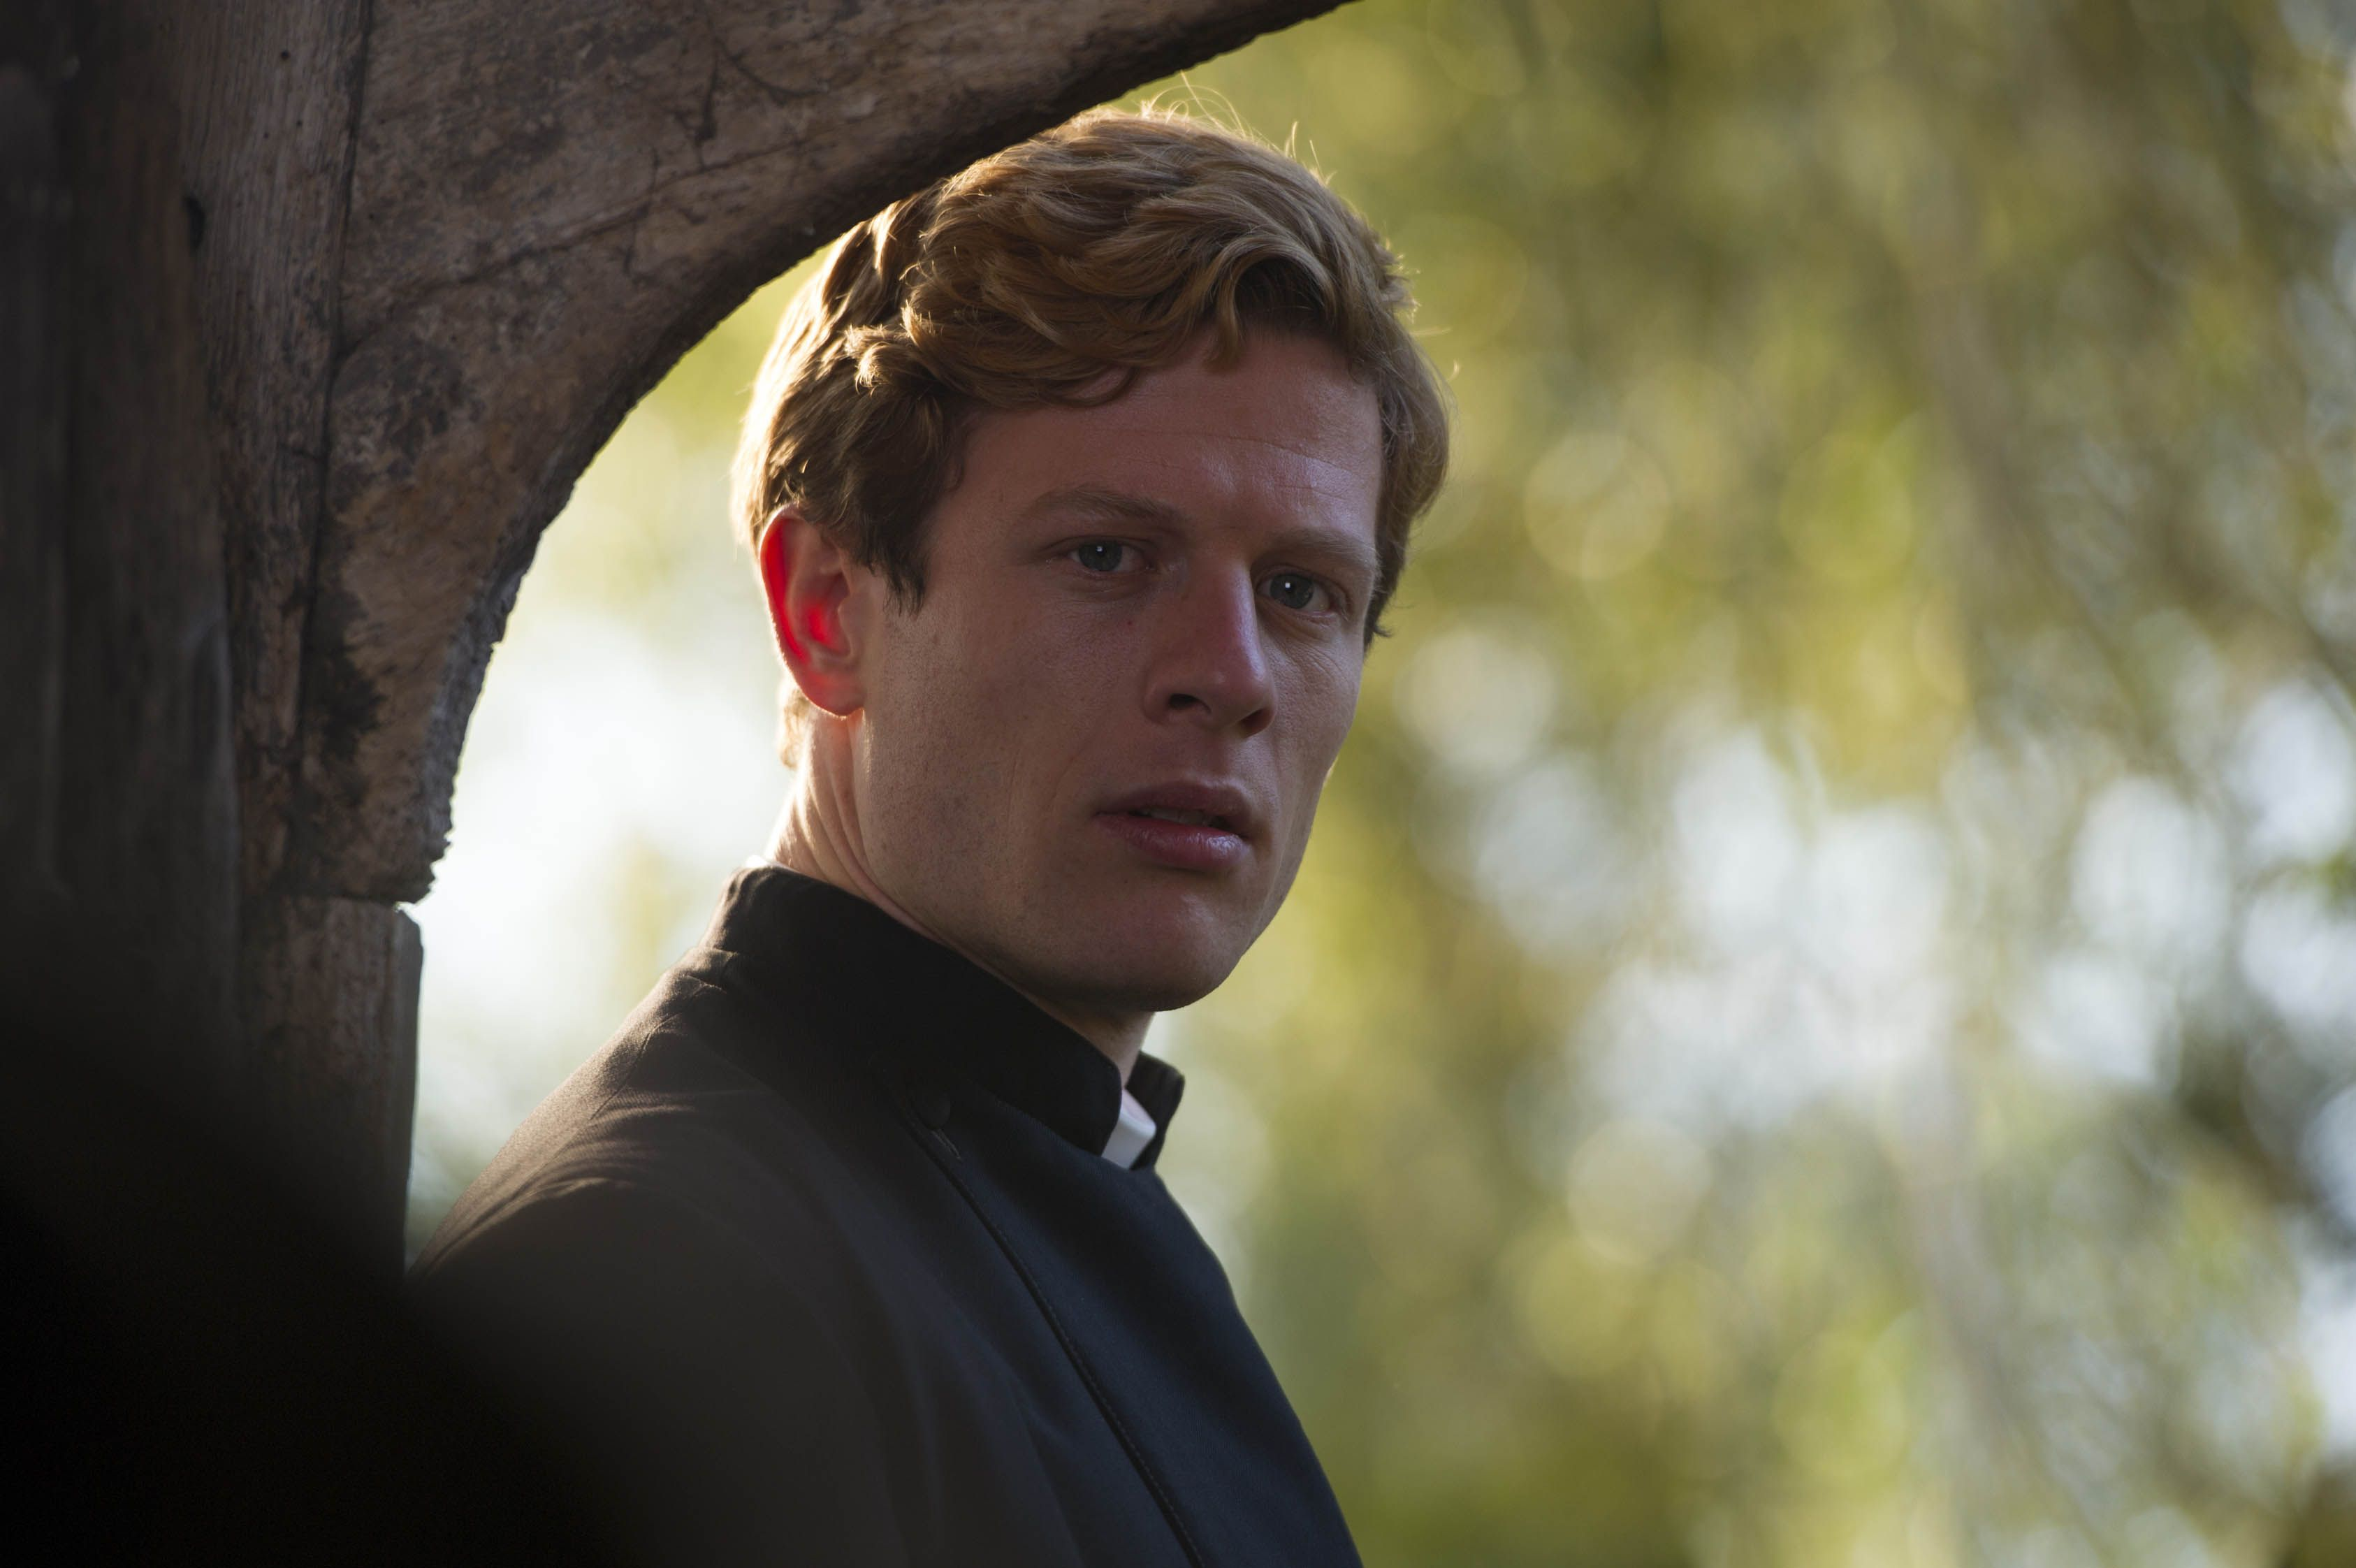 A running vicar detective is presented by Masterpiece in 'Grantchester'